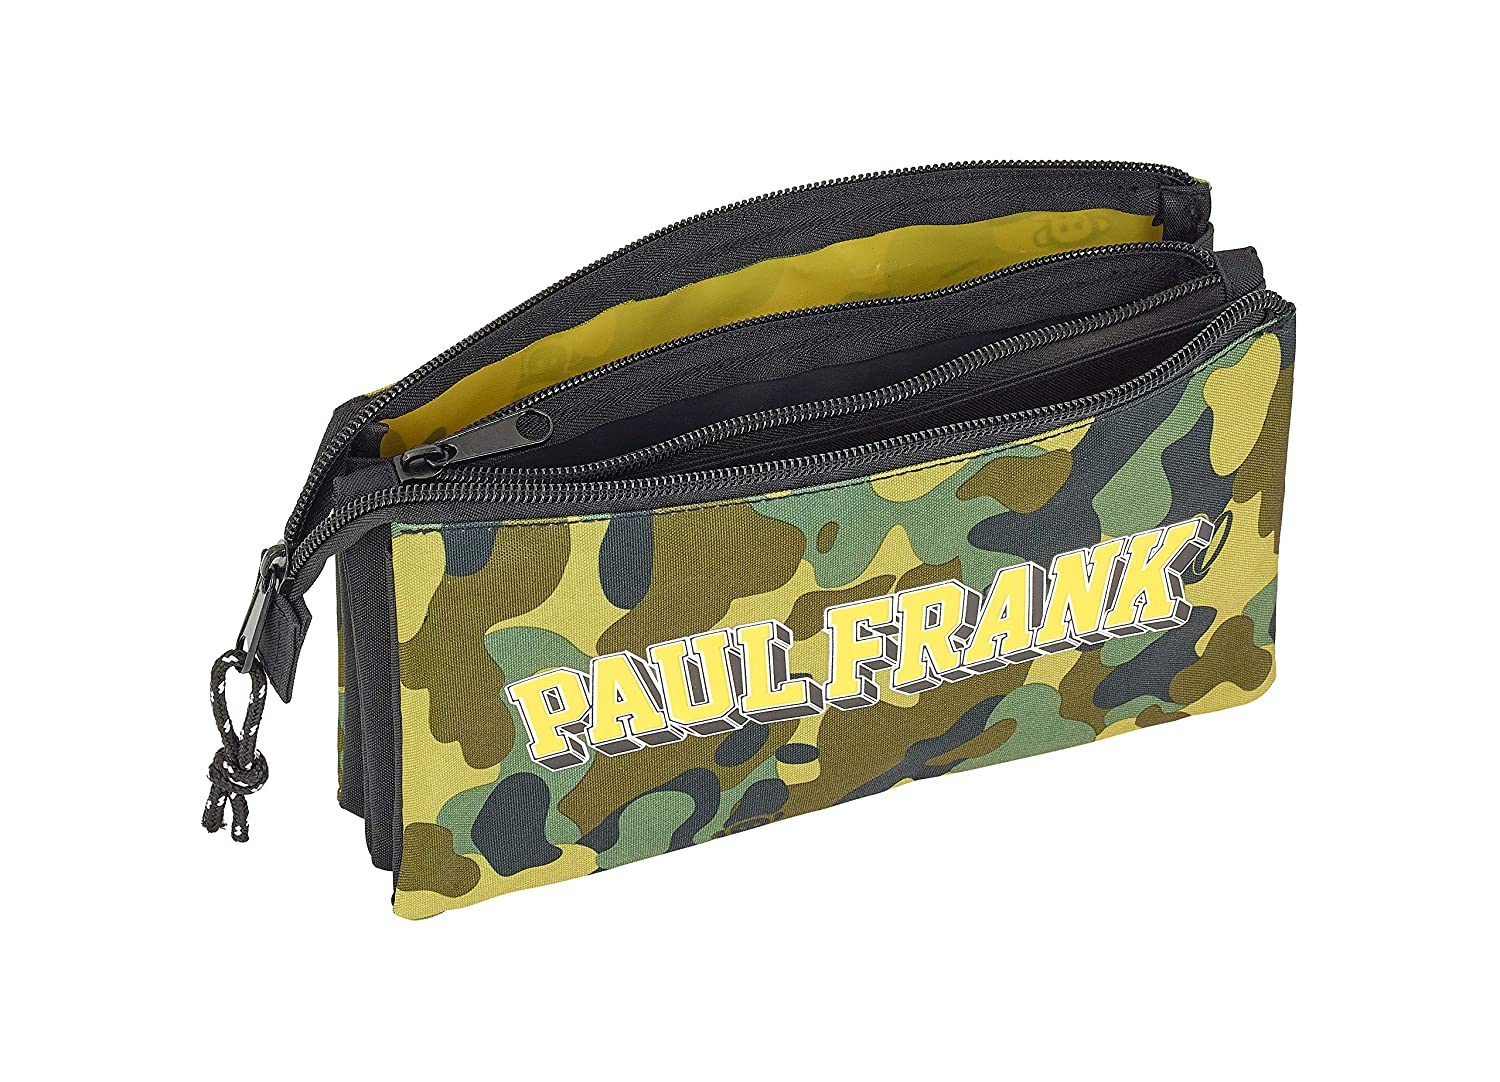 Paul Frank Camo Oficial Estuche Escolar 220x30x100mm: Amazon ...